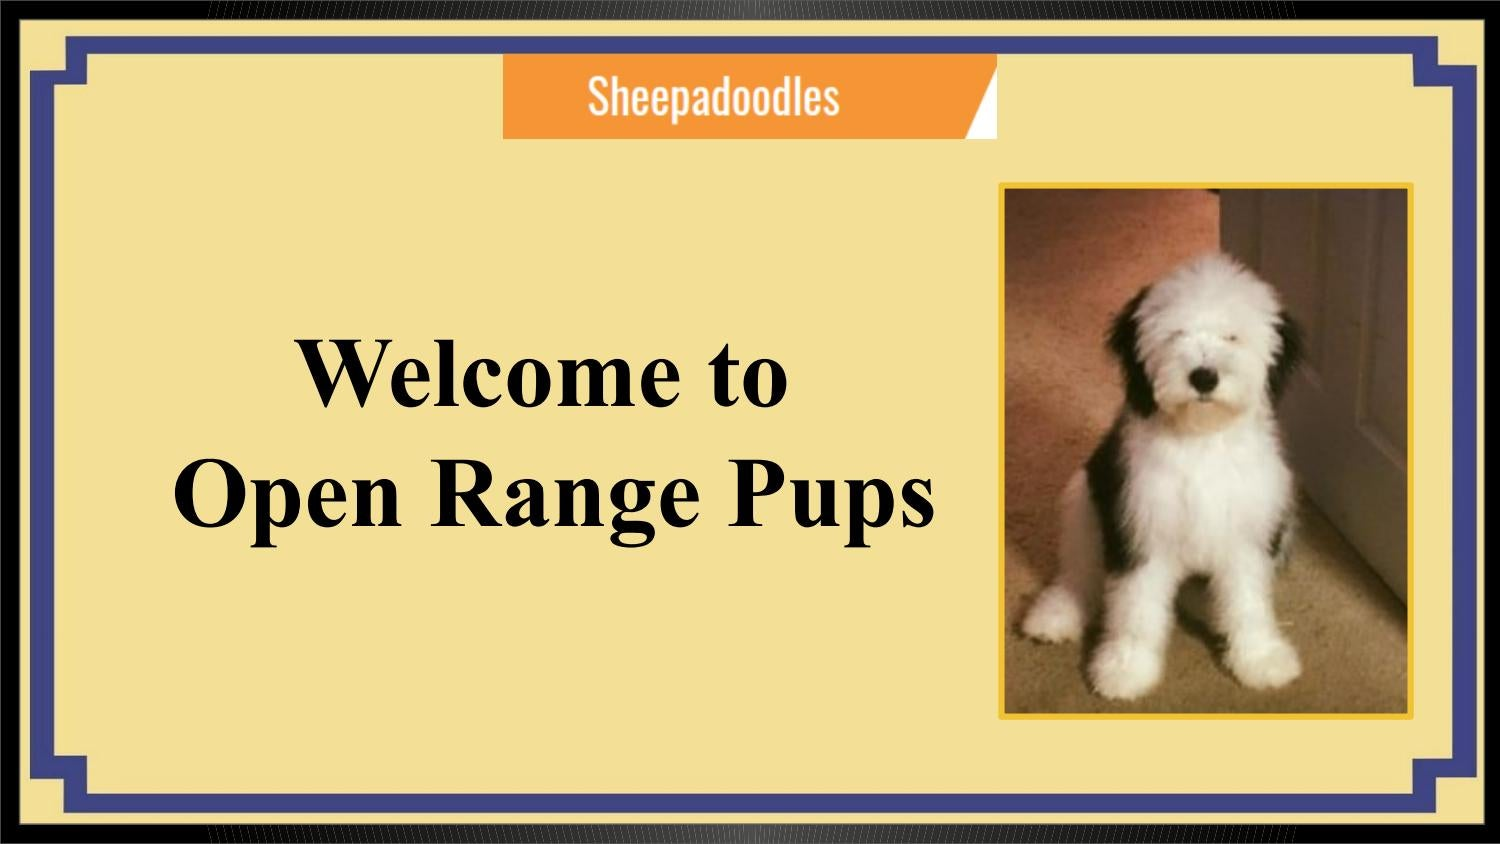 Sheepadoodle Puppies for Sale Eckert,CO | Open Range Pups by